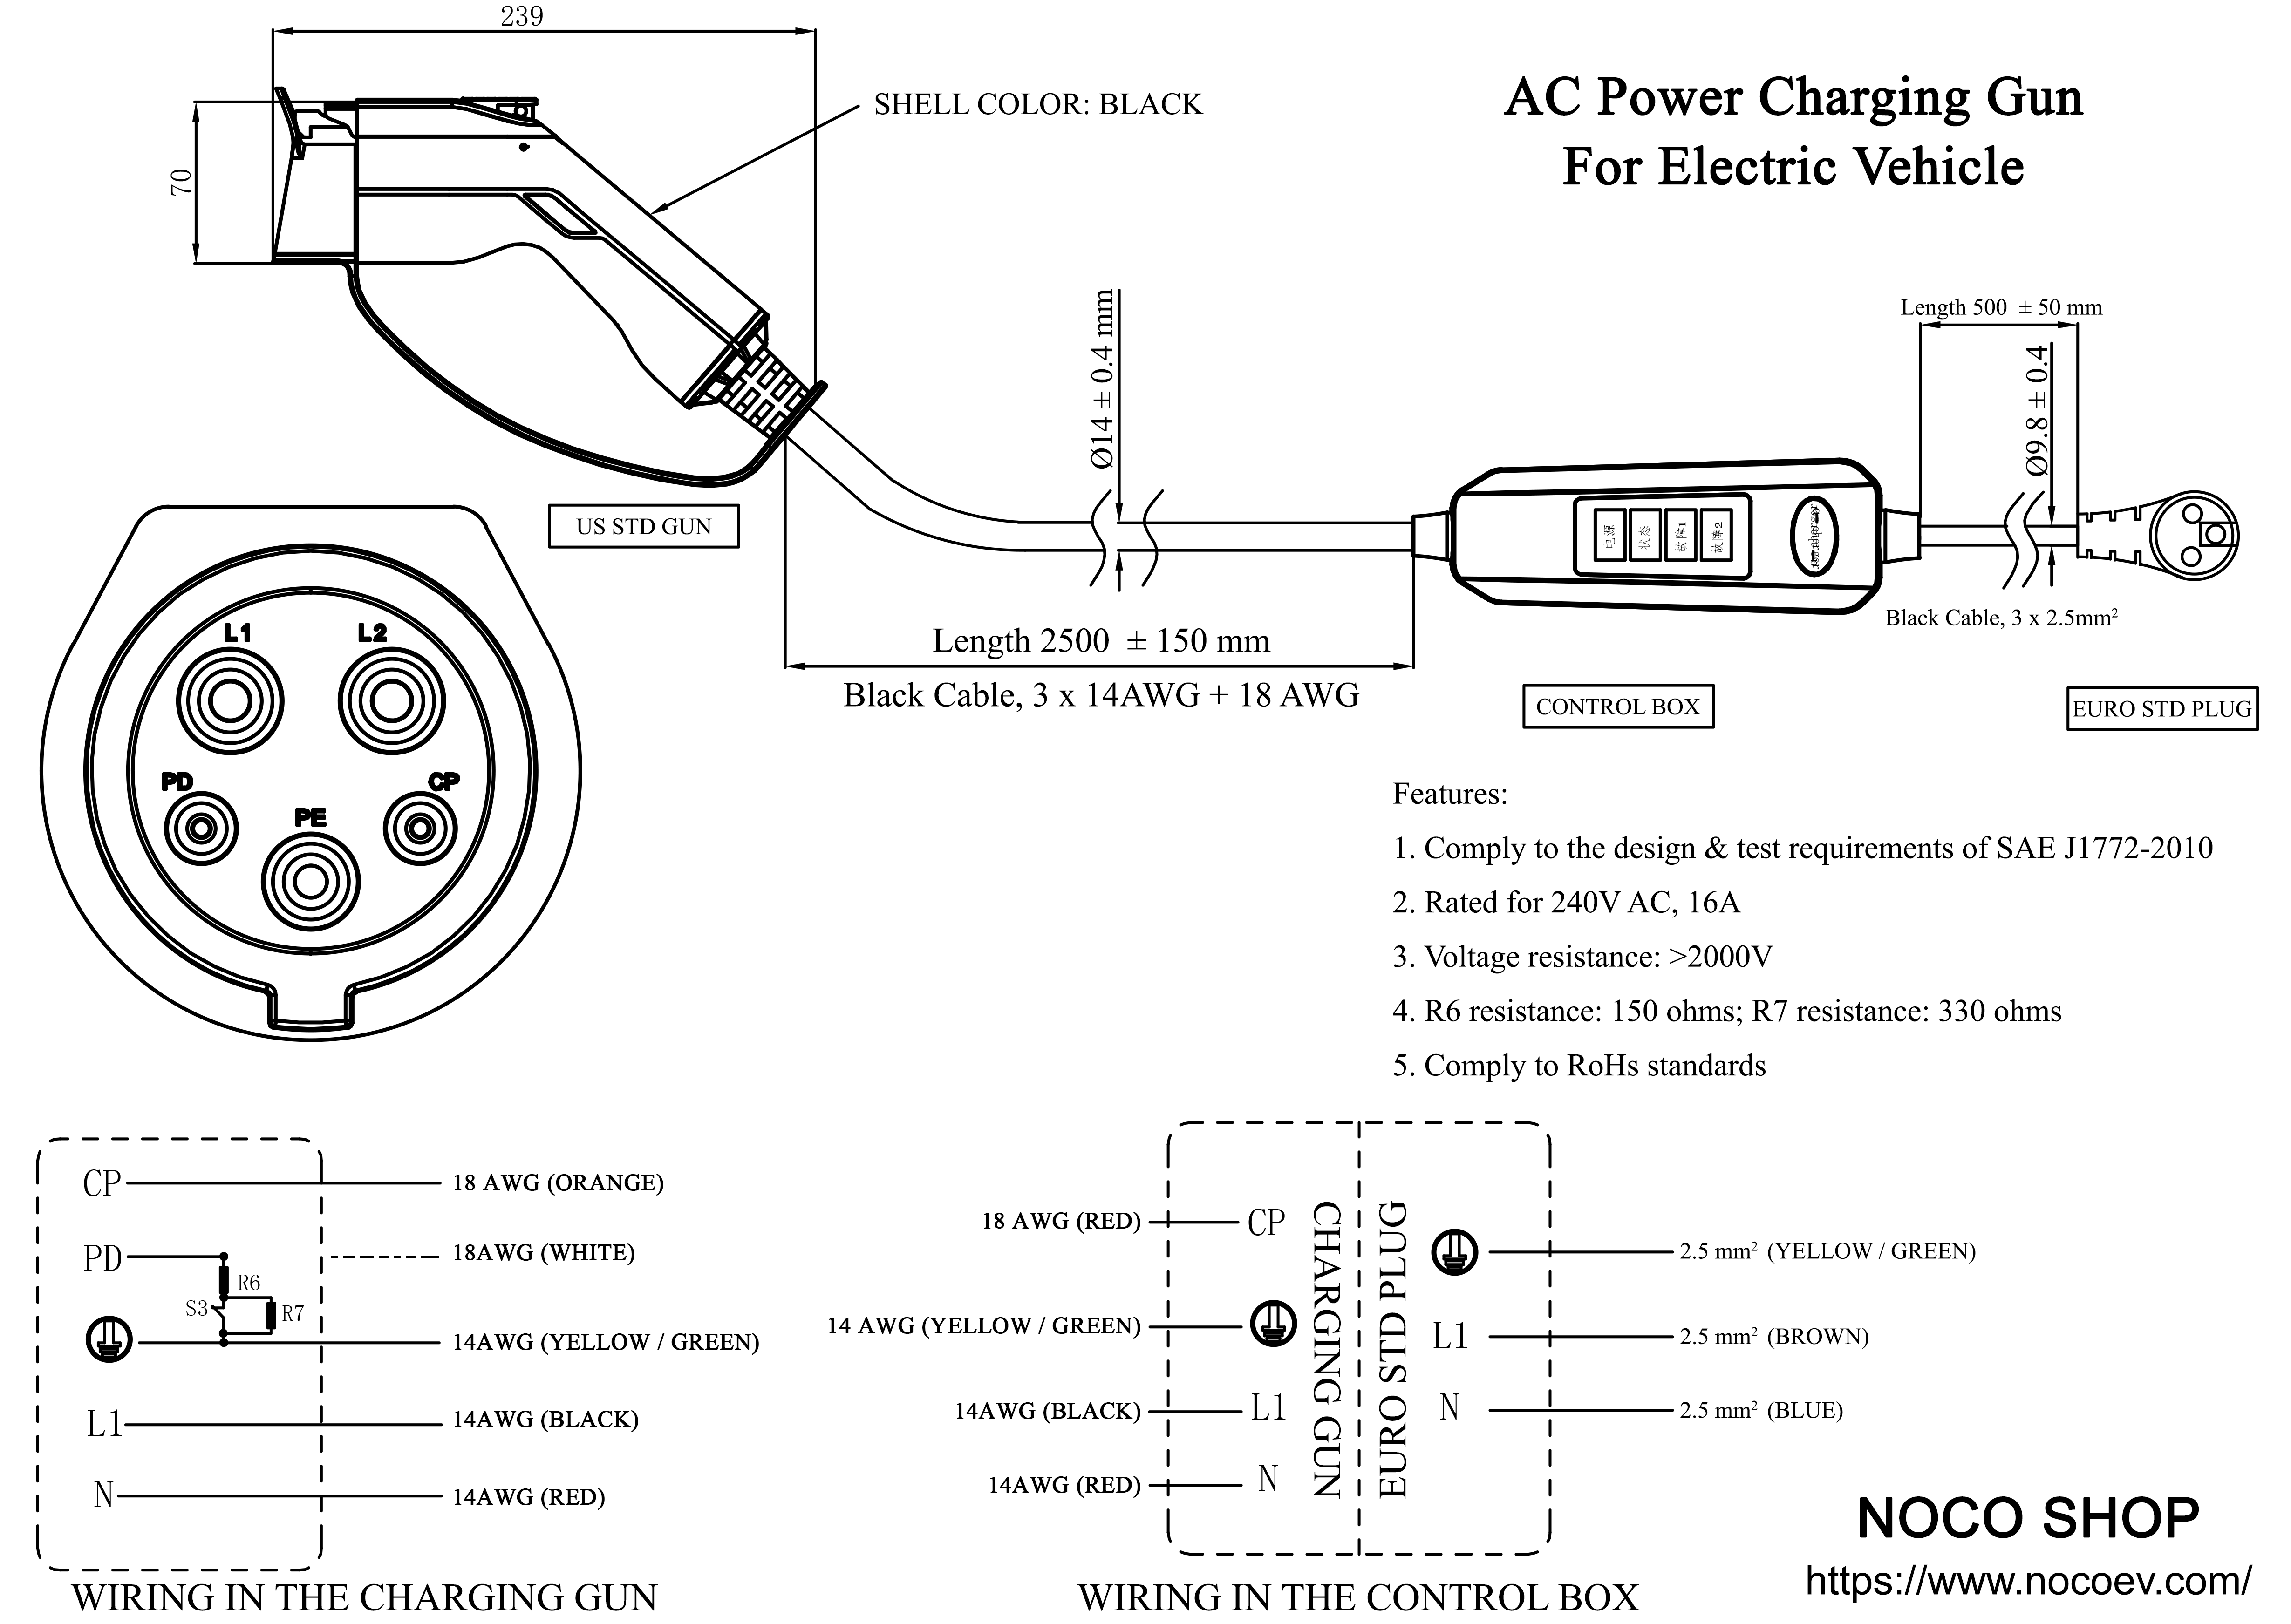 SAE J1772 (IEC Type 1, J Plug) Electrical Connector For Electric VehicleNOCO SHOP